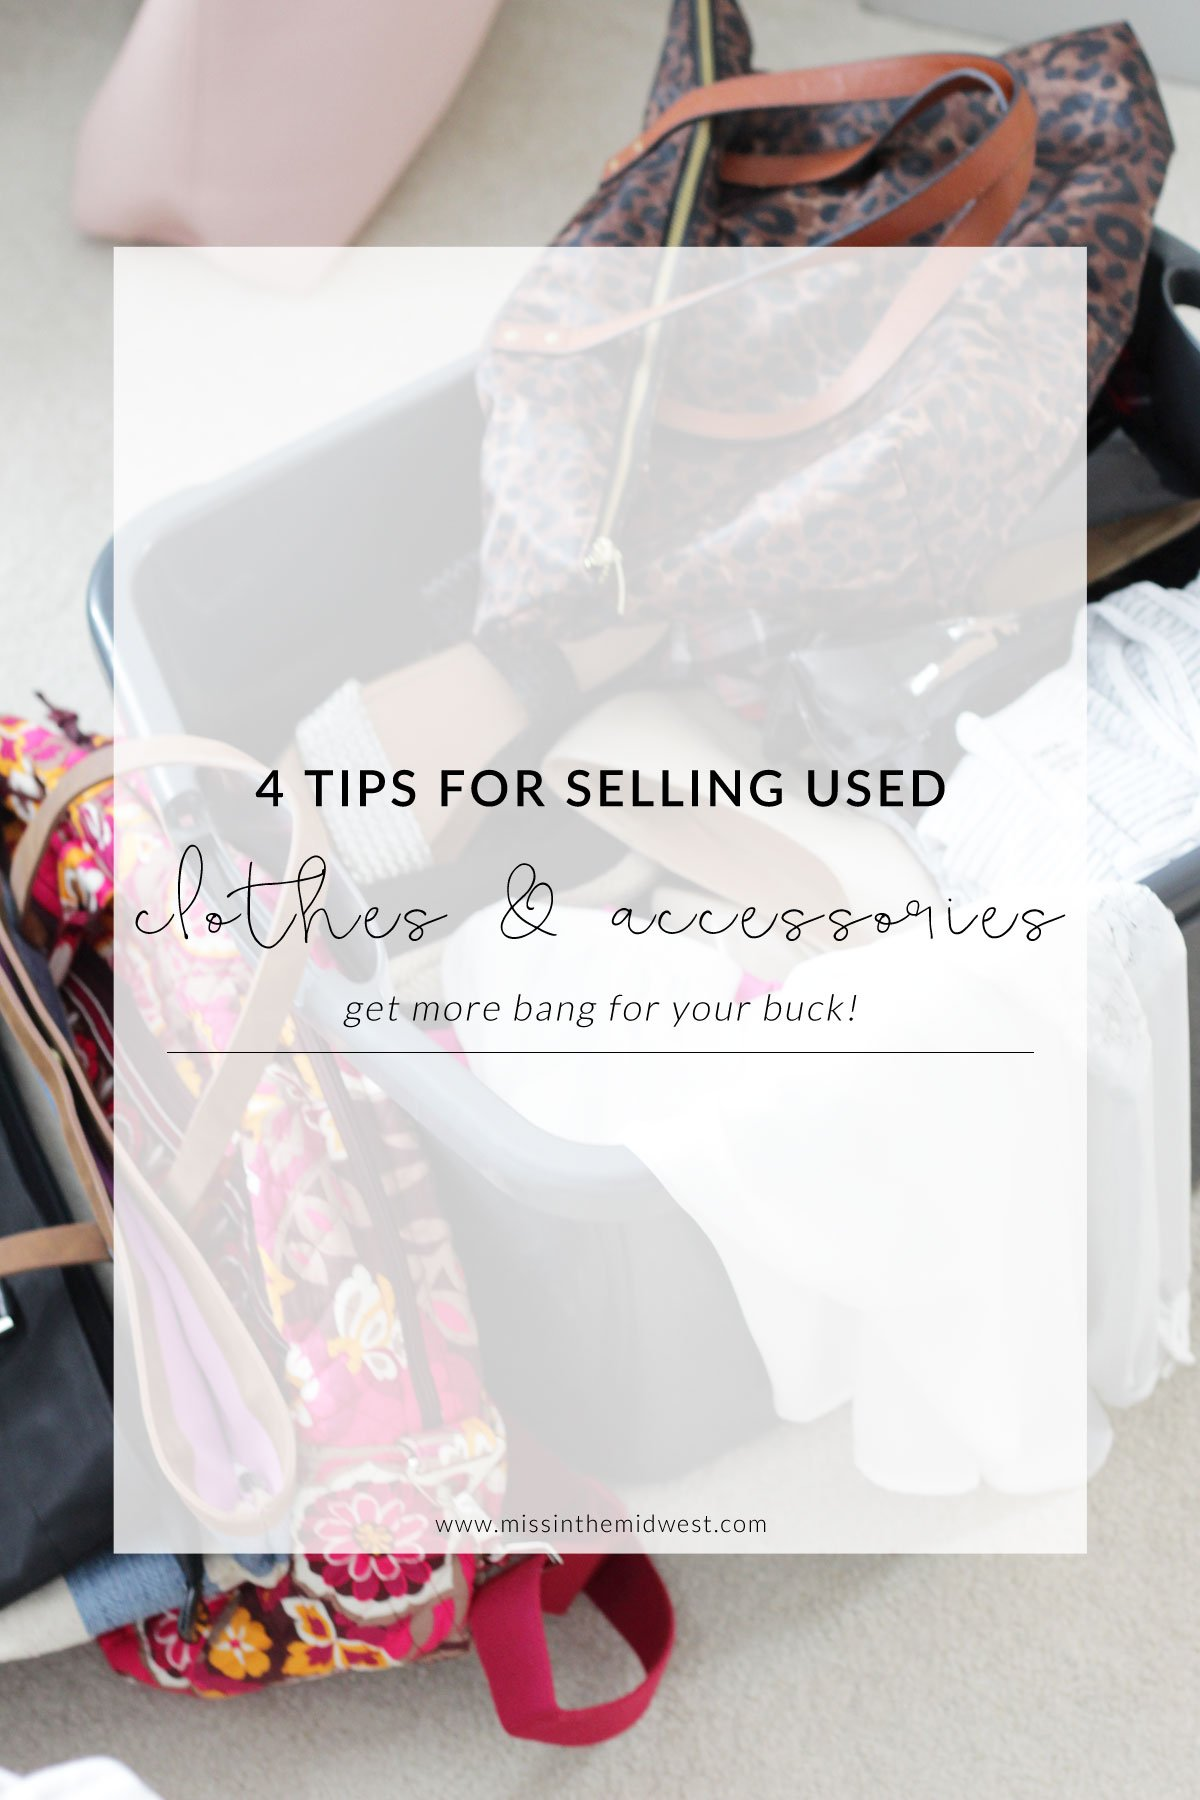 4 Tips For Selling Used Clothes and Accessories